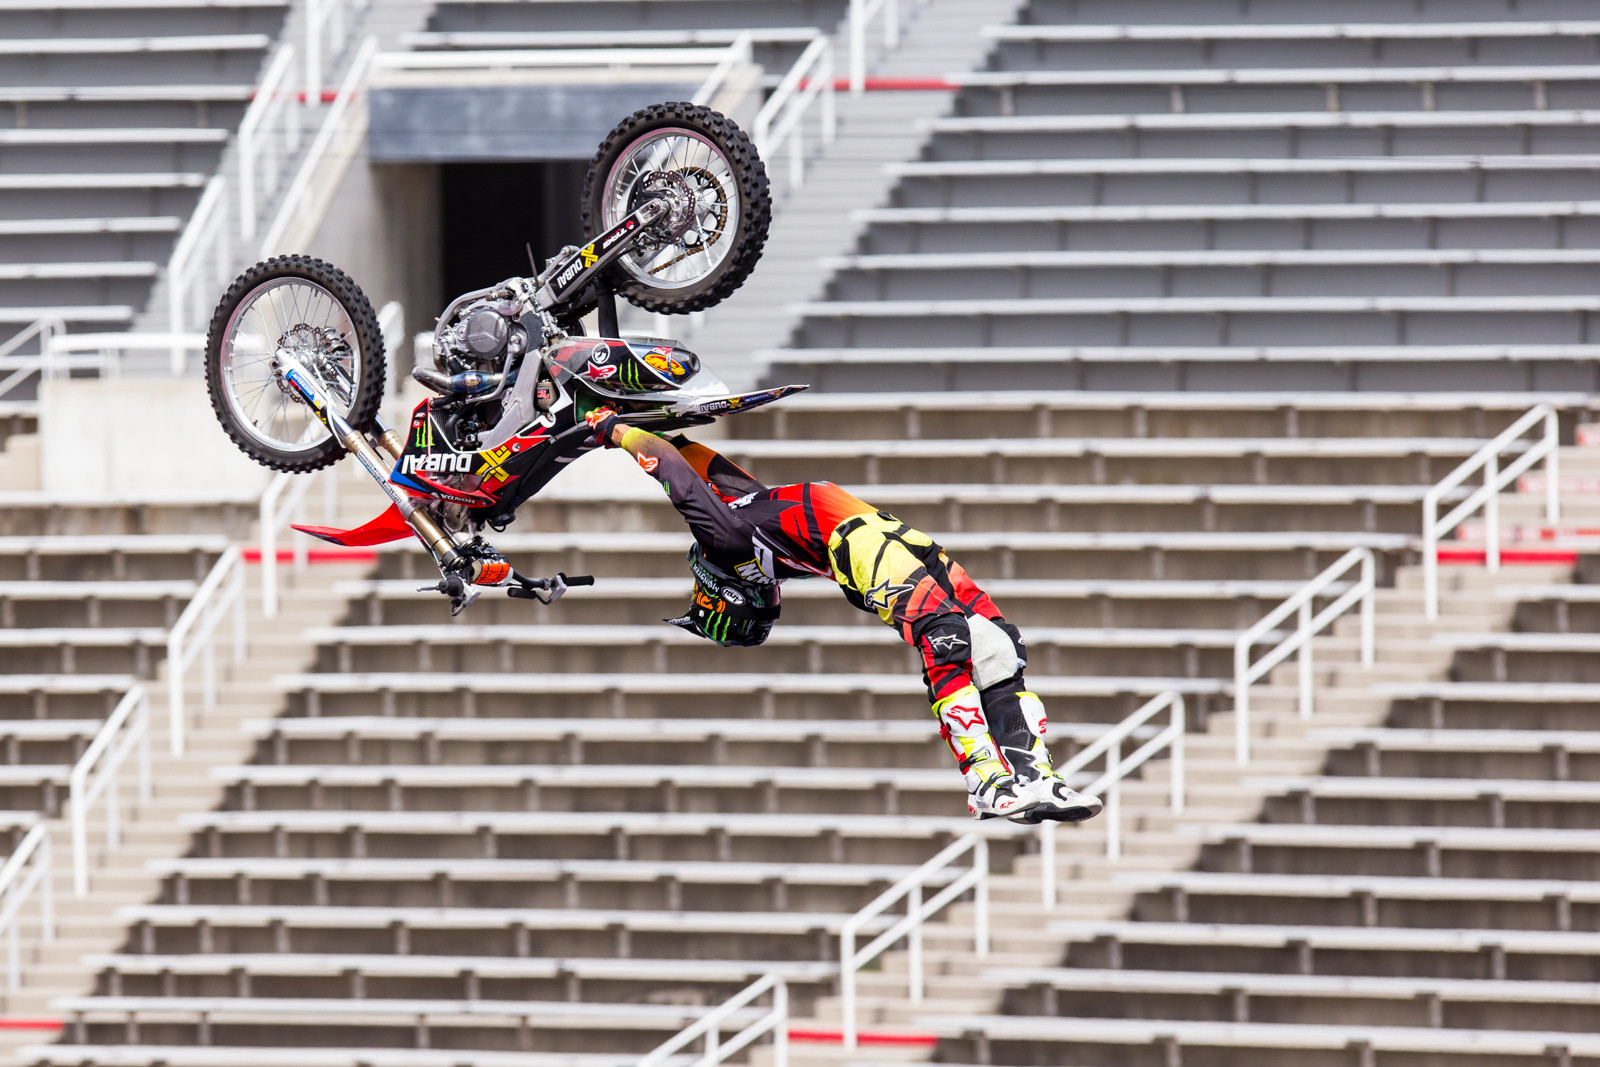 Josh Sheehan - 2016 Nitro World Games: FMX Qualifying Gallery - Motocross Pictures - Vital MX